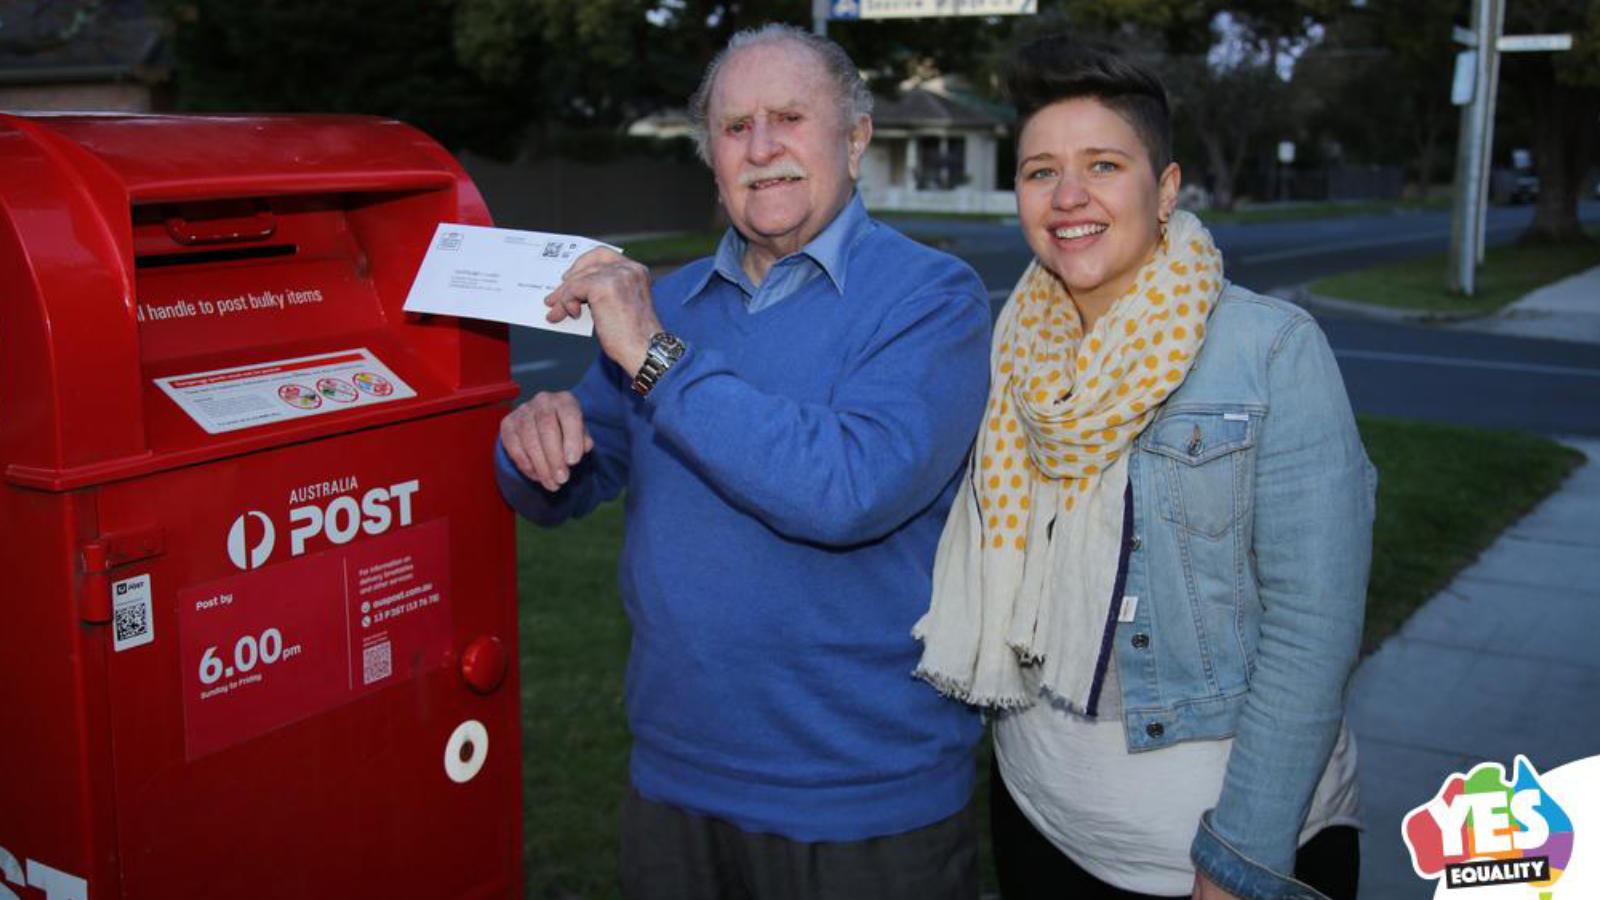 Man and woman posting into a red letter box. Image, Craig Dwyer